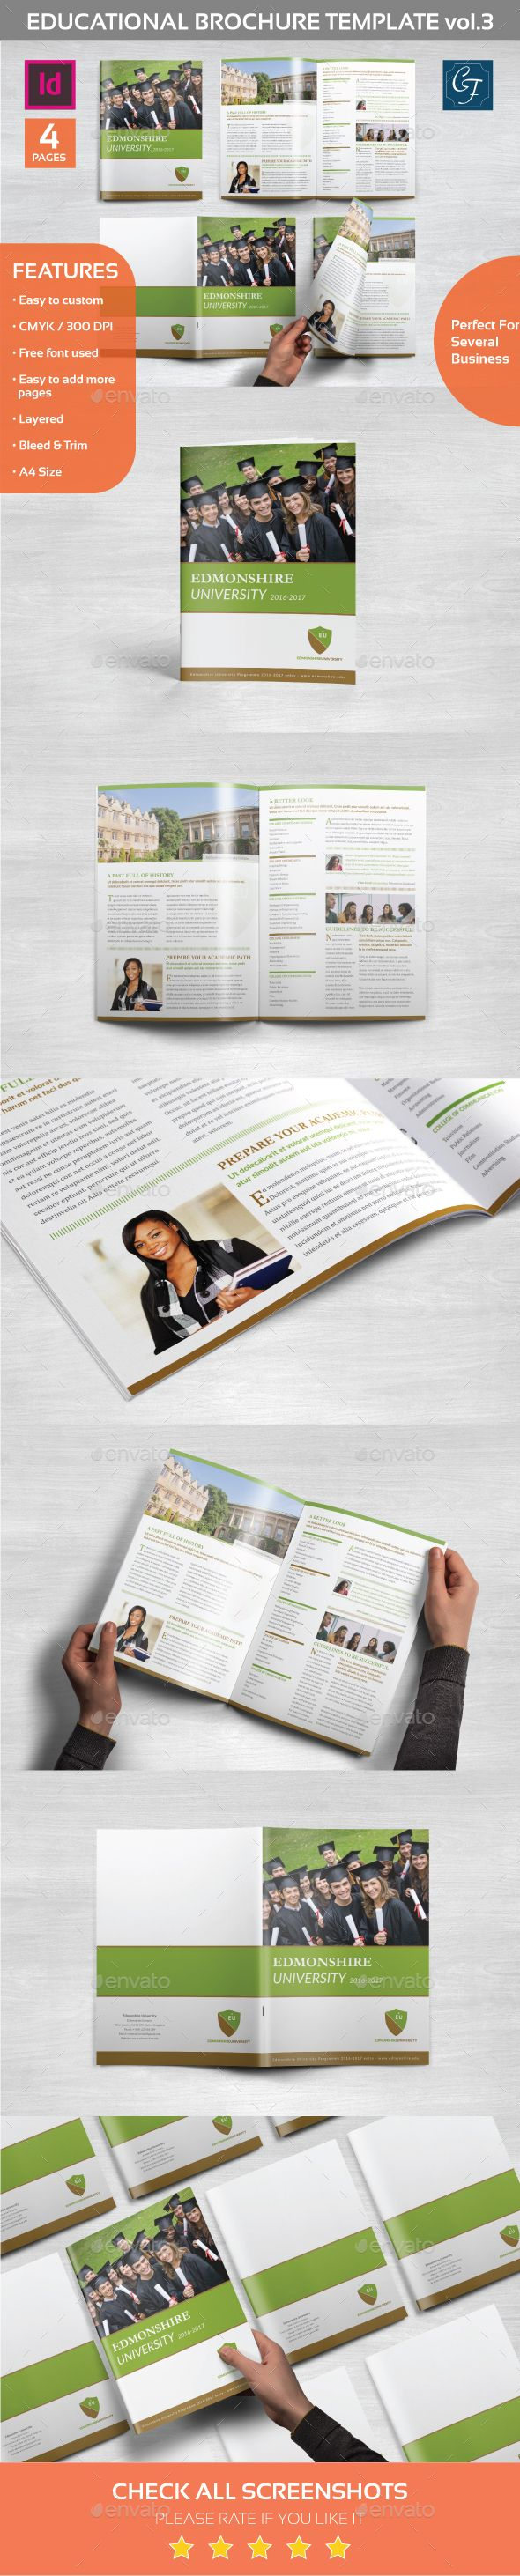 1000+ images about Informational Brochure Template on Pinterest